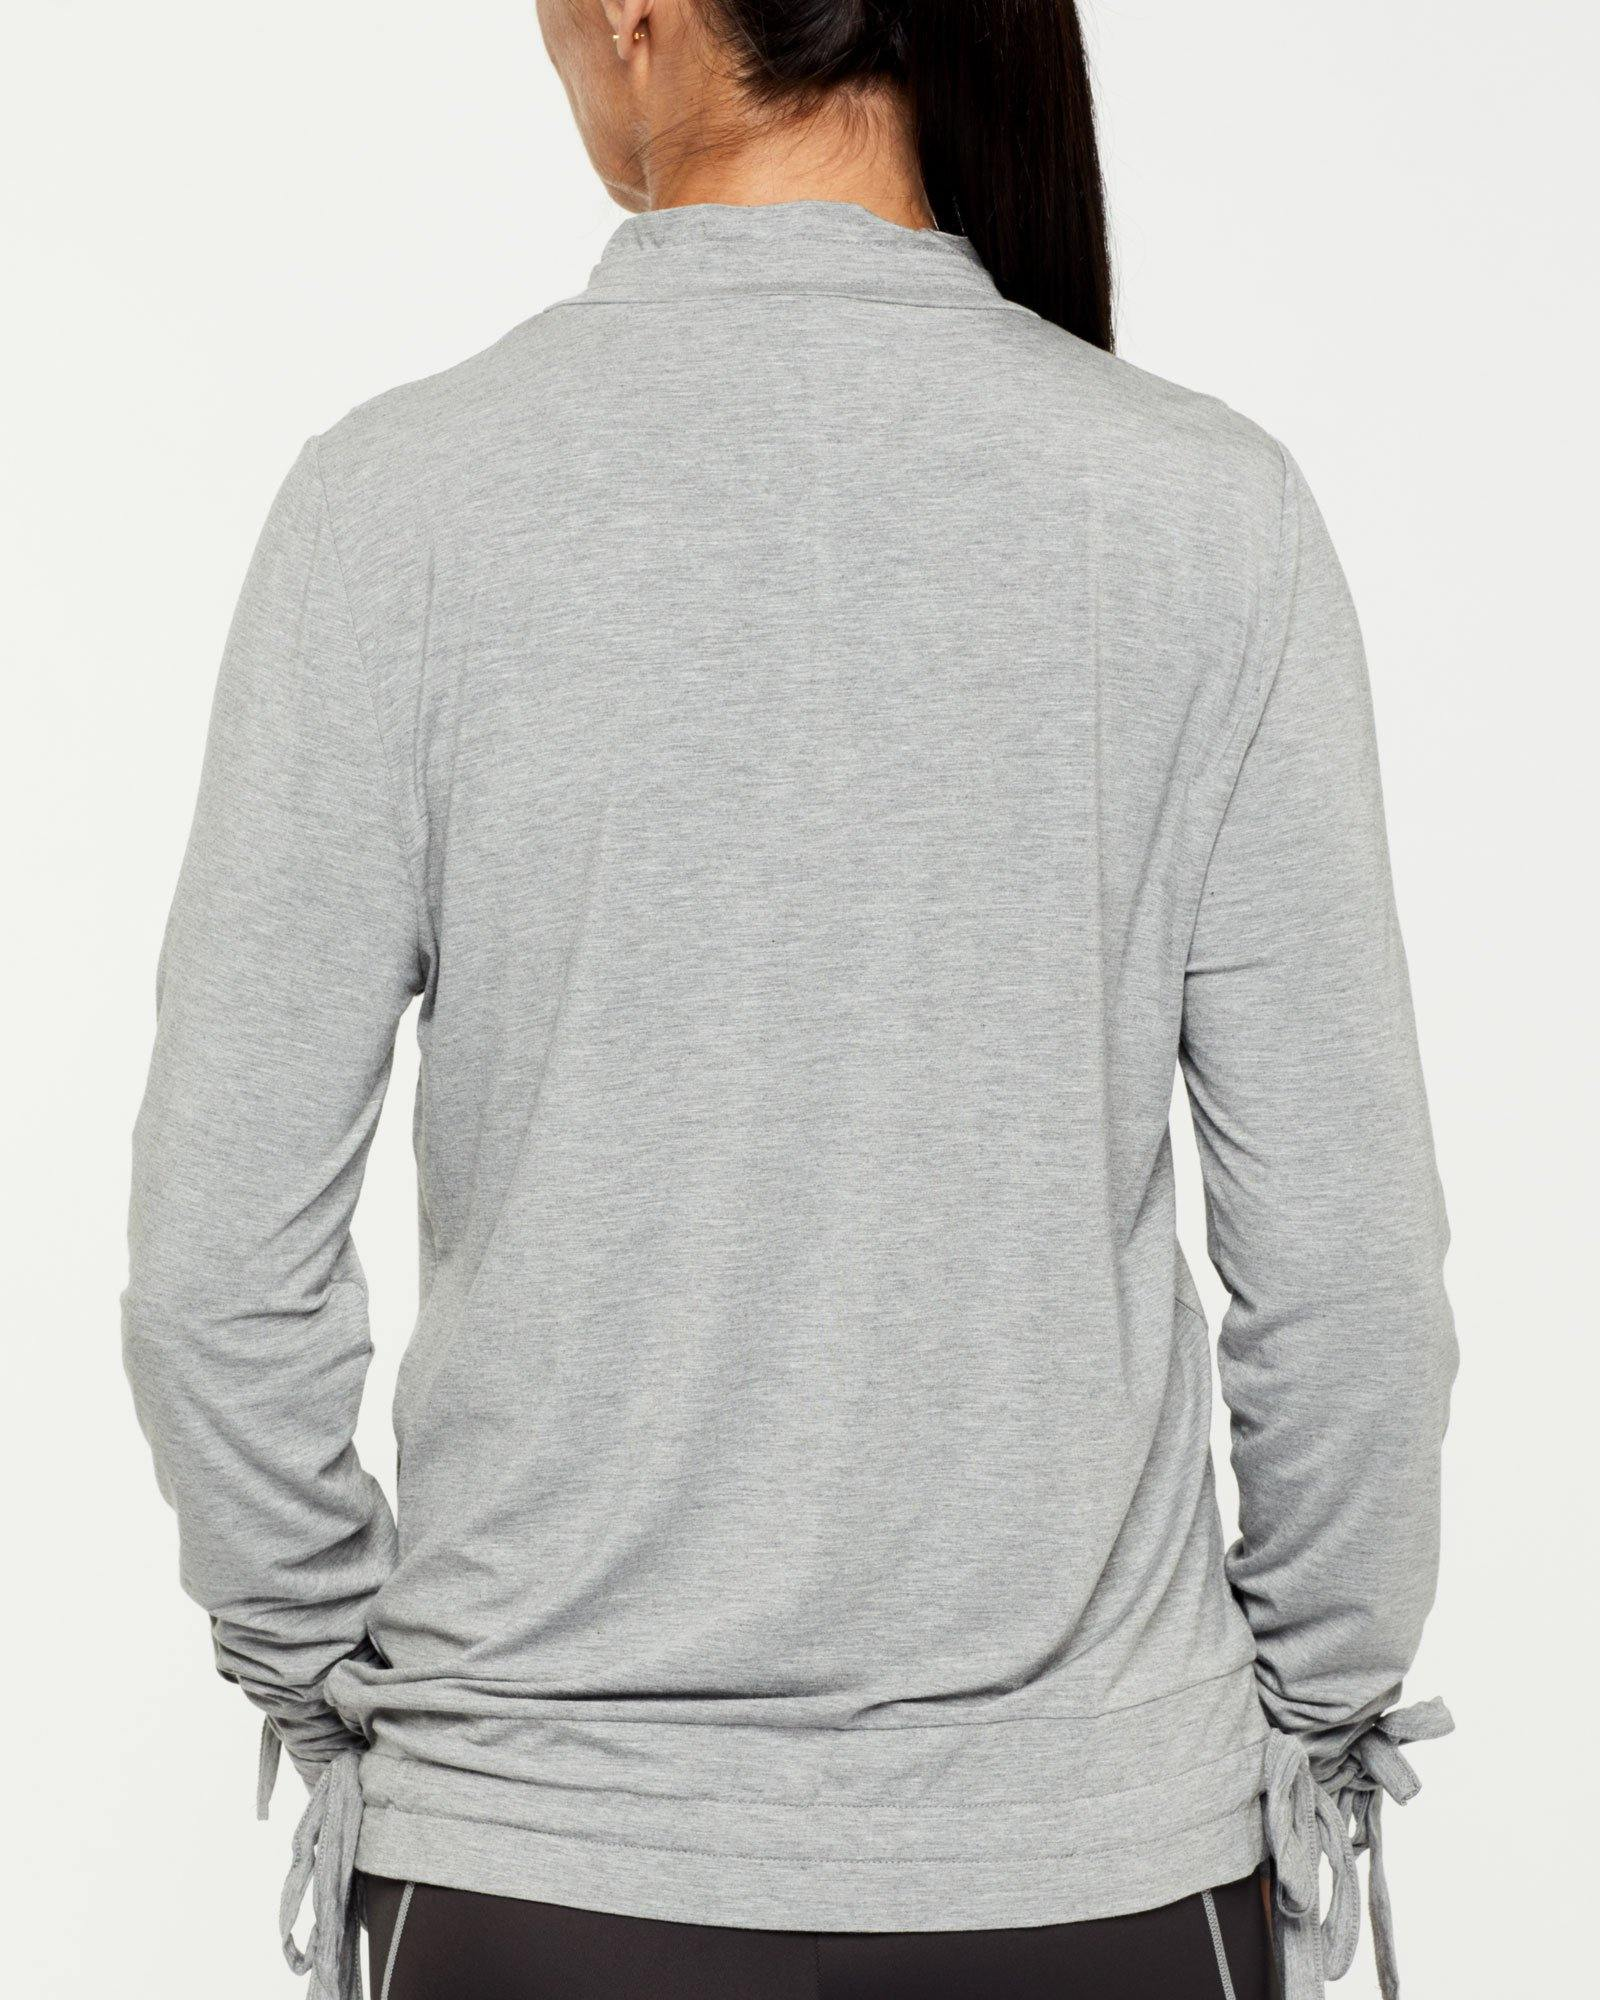 Steely Spinae long sleeve adjustable top with self ties, light grey, bamboo worn with Vastus mid waist full length legging, back view